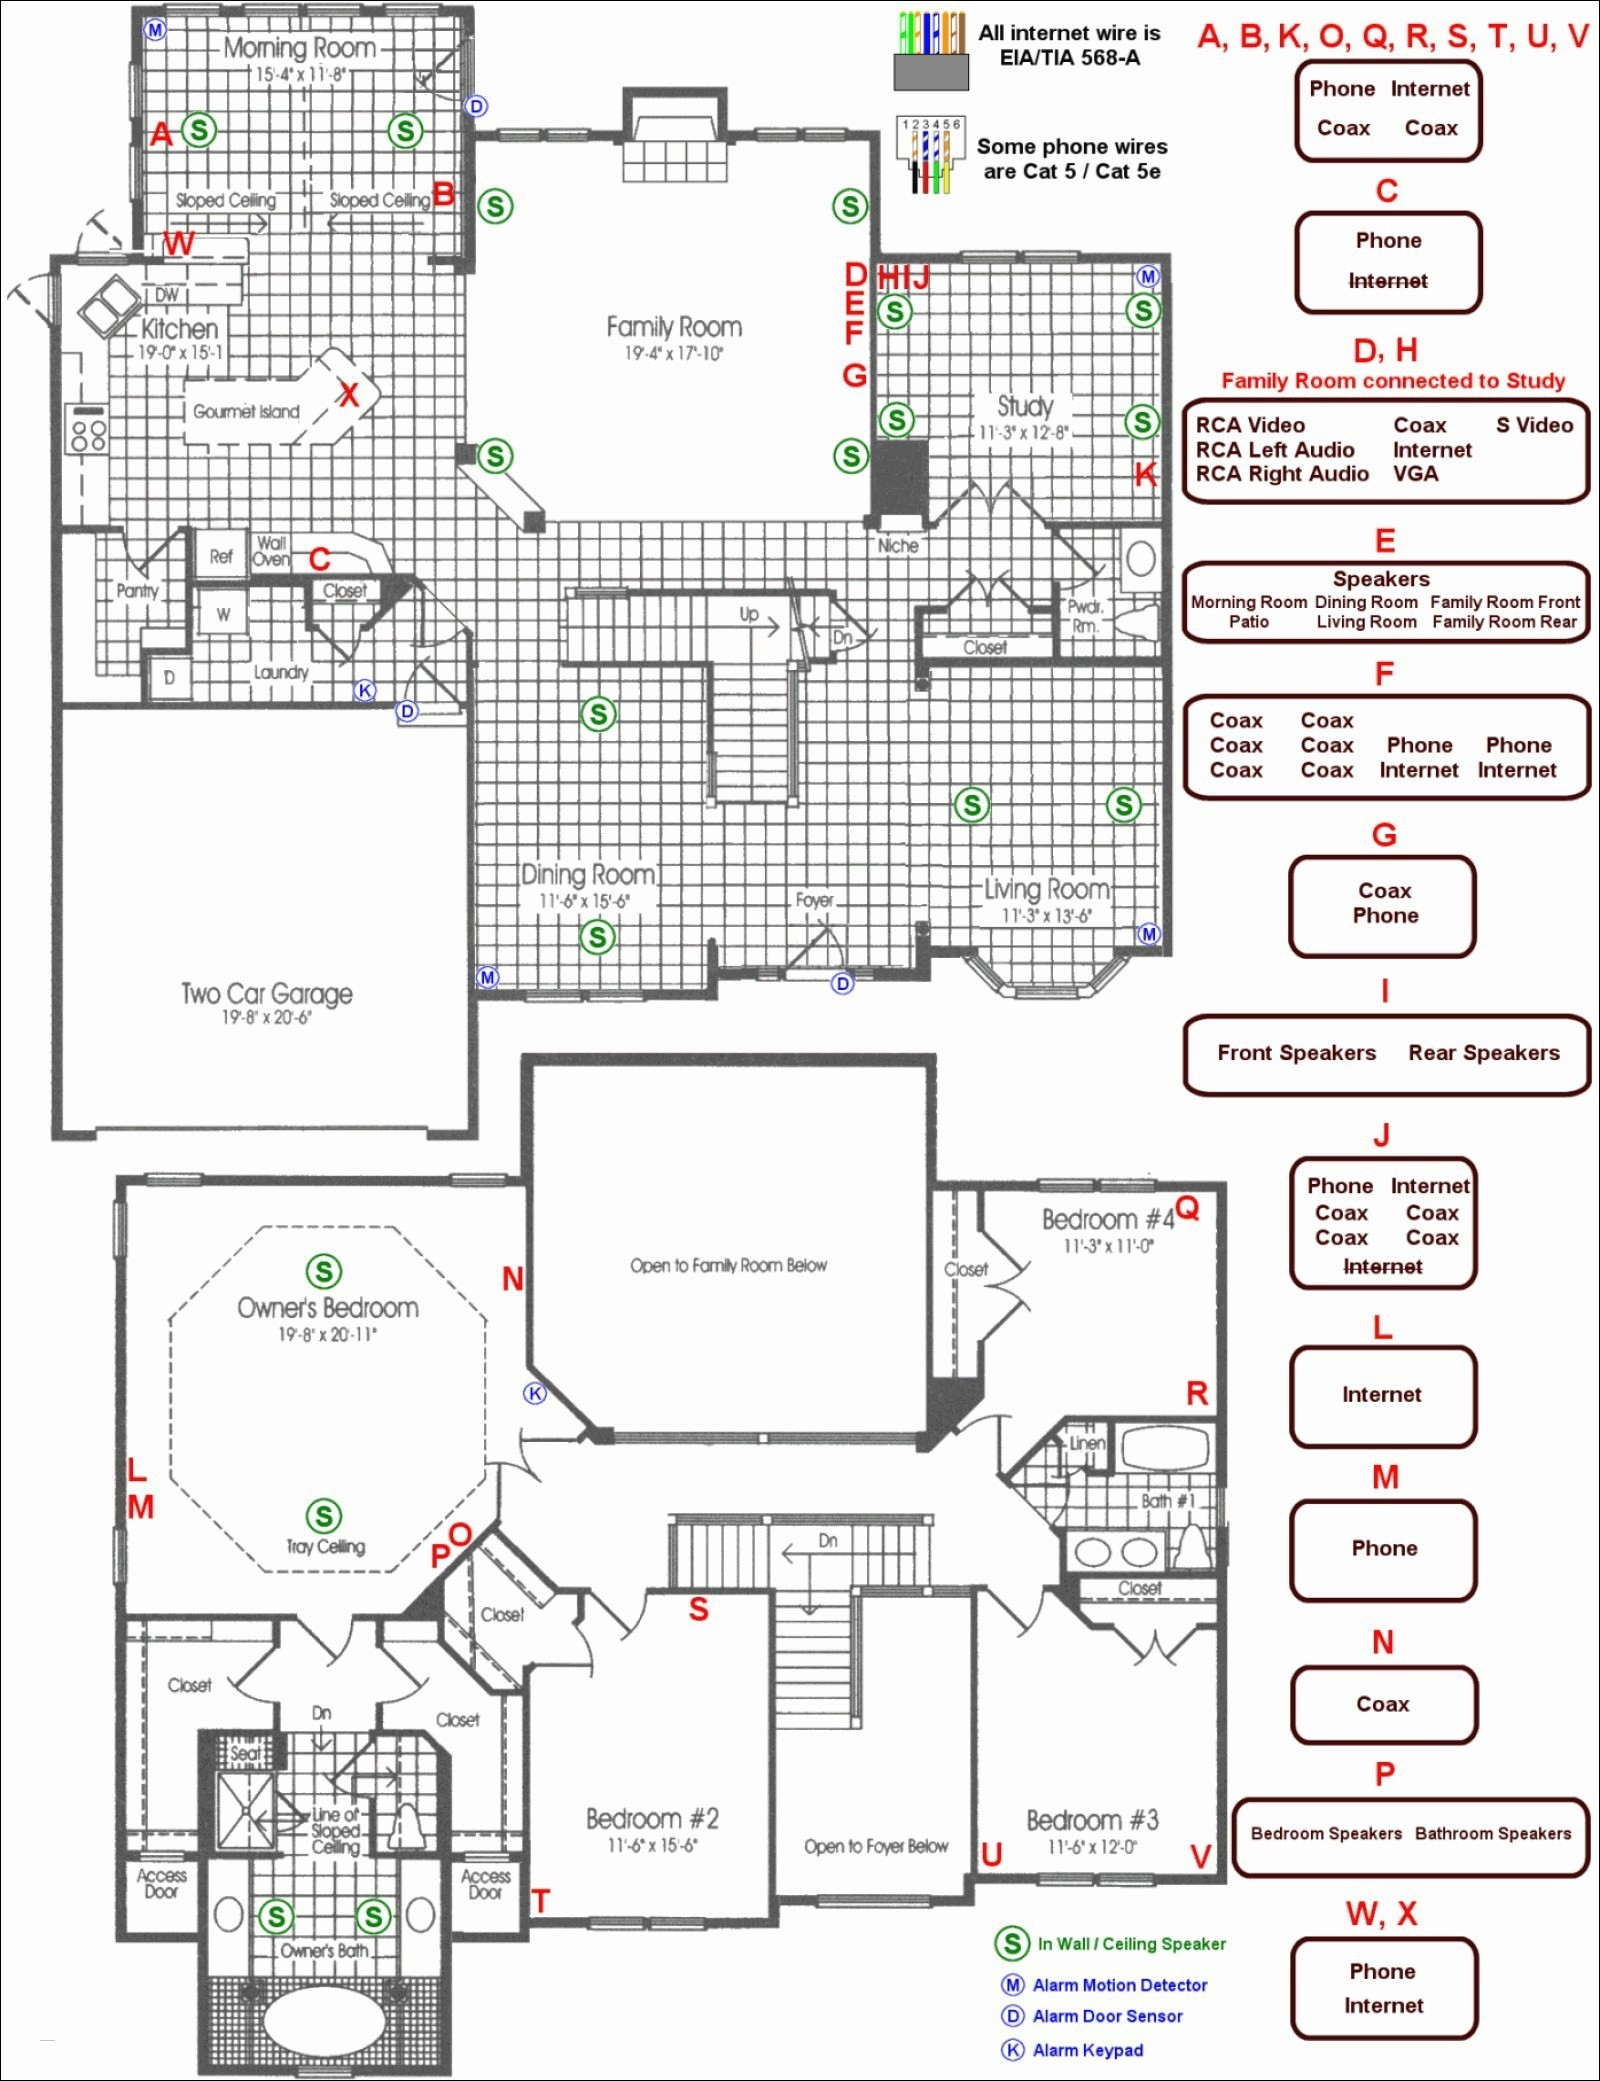 home wiring diagram software Download-House Wiring Plan Drawing Awesome Electrical Wiring Diagram Symbols Sample 15-a